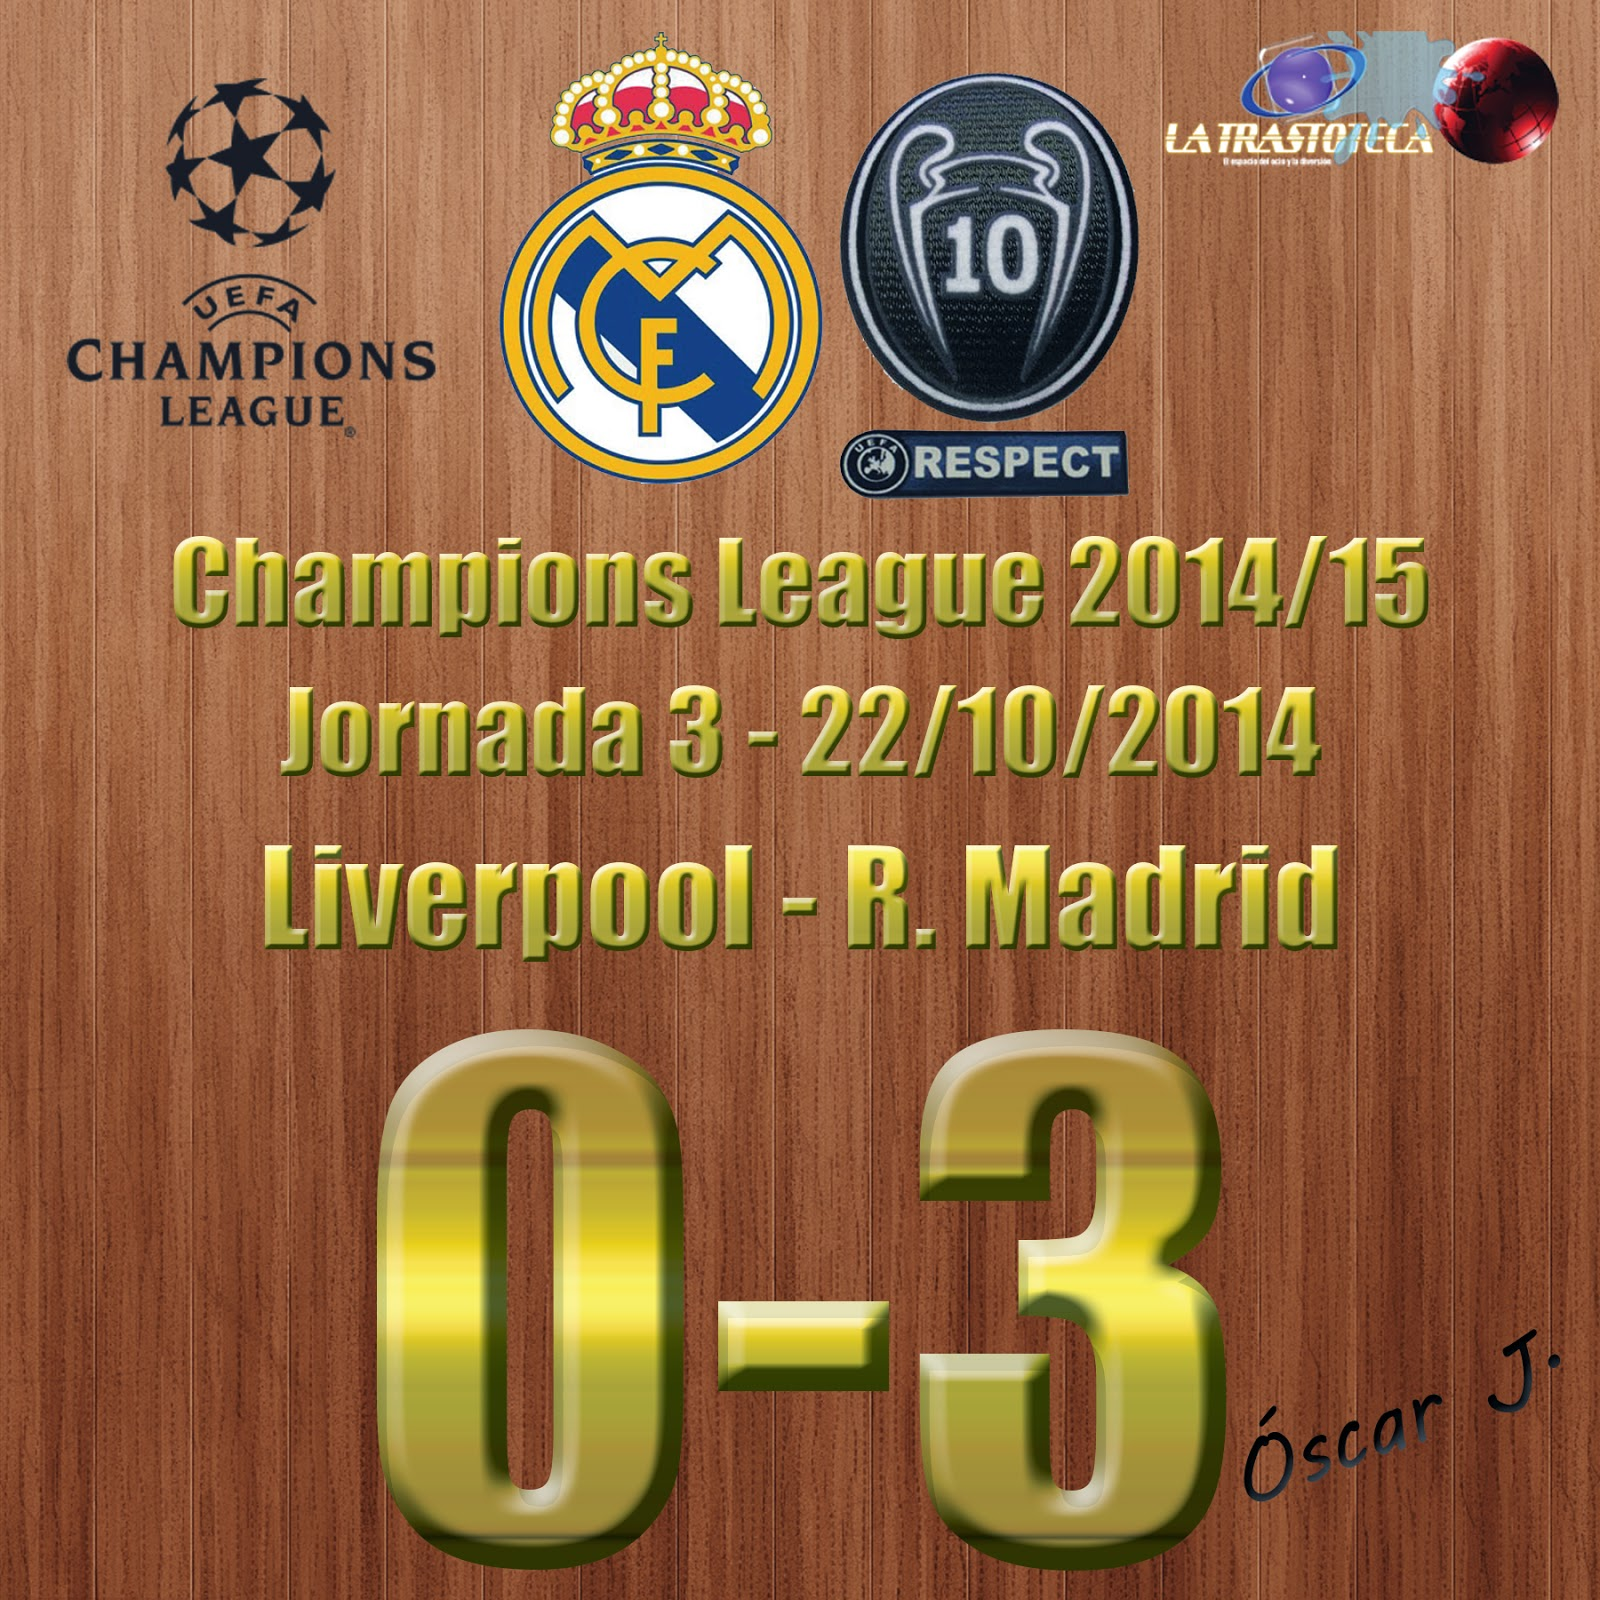 Cristiano Ronaldo - (0-1) - Liverpool 0-3 Real Madrid - Champions League 2014/15 - (22/10/2014)